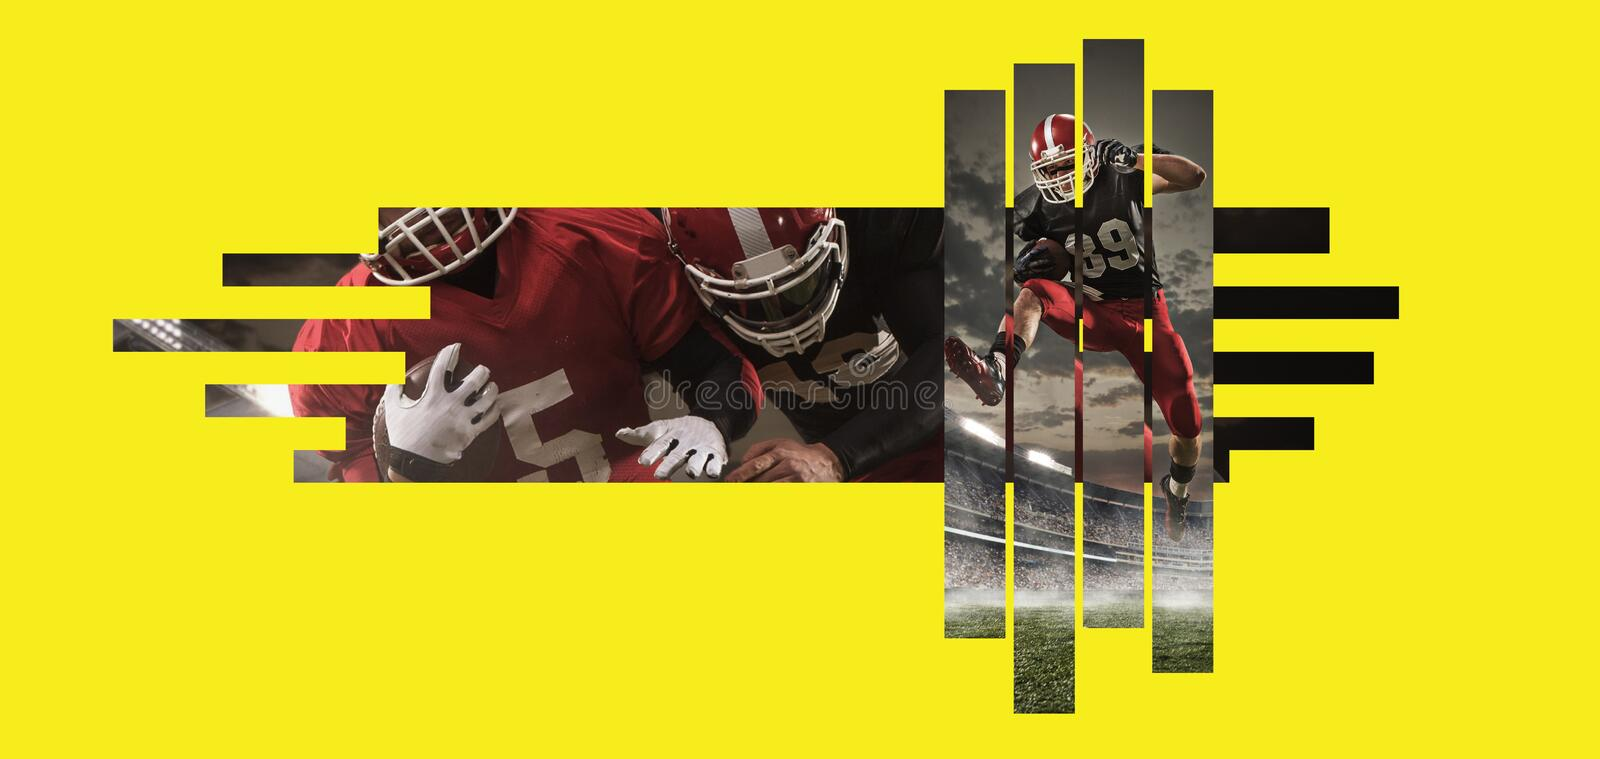 American football players in action against yellow copyspace royalty free stock images